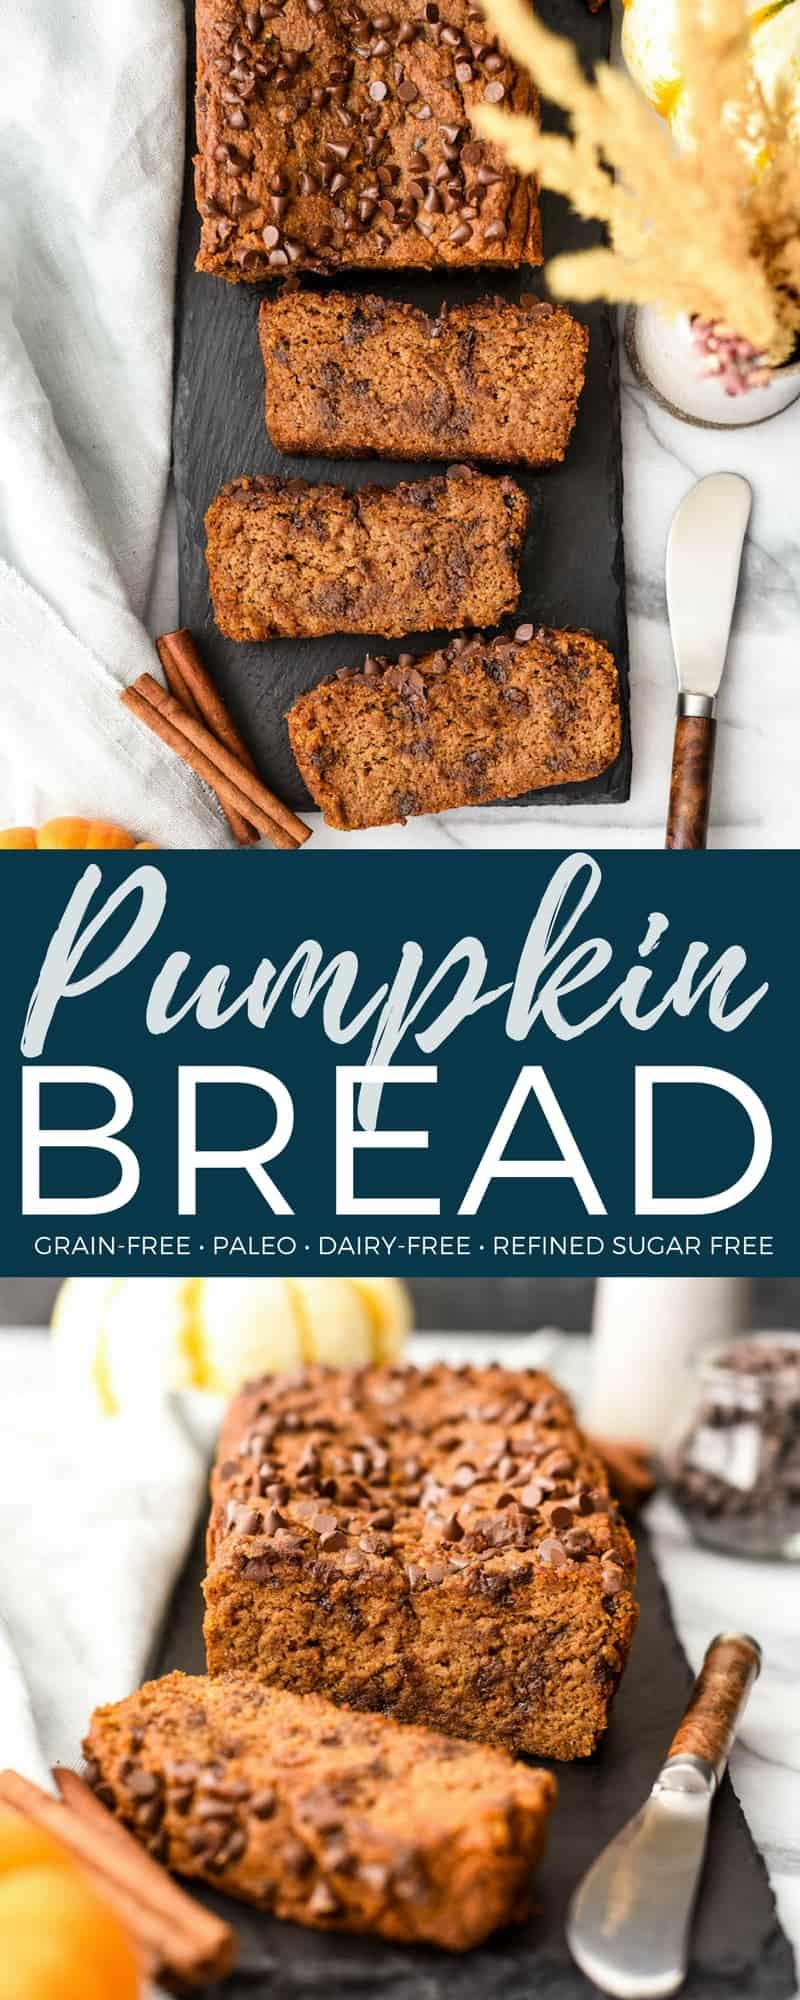 Paleo Pumpkin Bread is a healthier version of everyone's favorite fall quick bread recipe! High in protein, fiber and nutrients but tastes like dessert! The perfect healthy breakfast or snack! Gluten-free, dairy-free & refined sugar free! #paleo #pumpkinbread #recipe #pumpkin #bread #quickbread #healthy #recipe